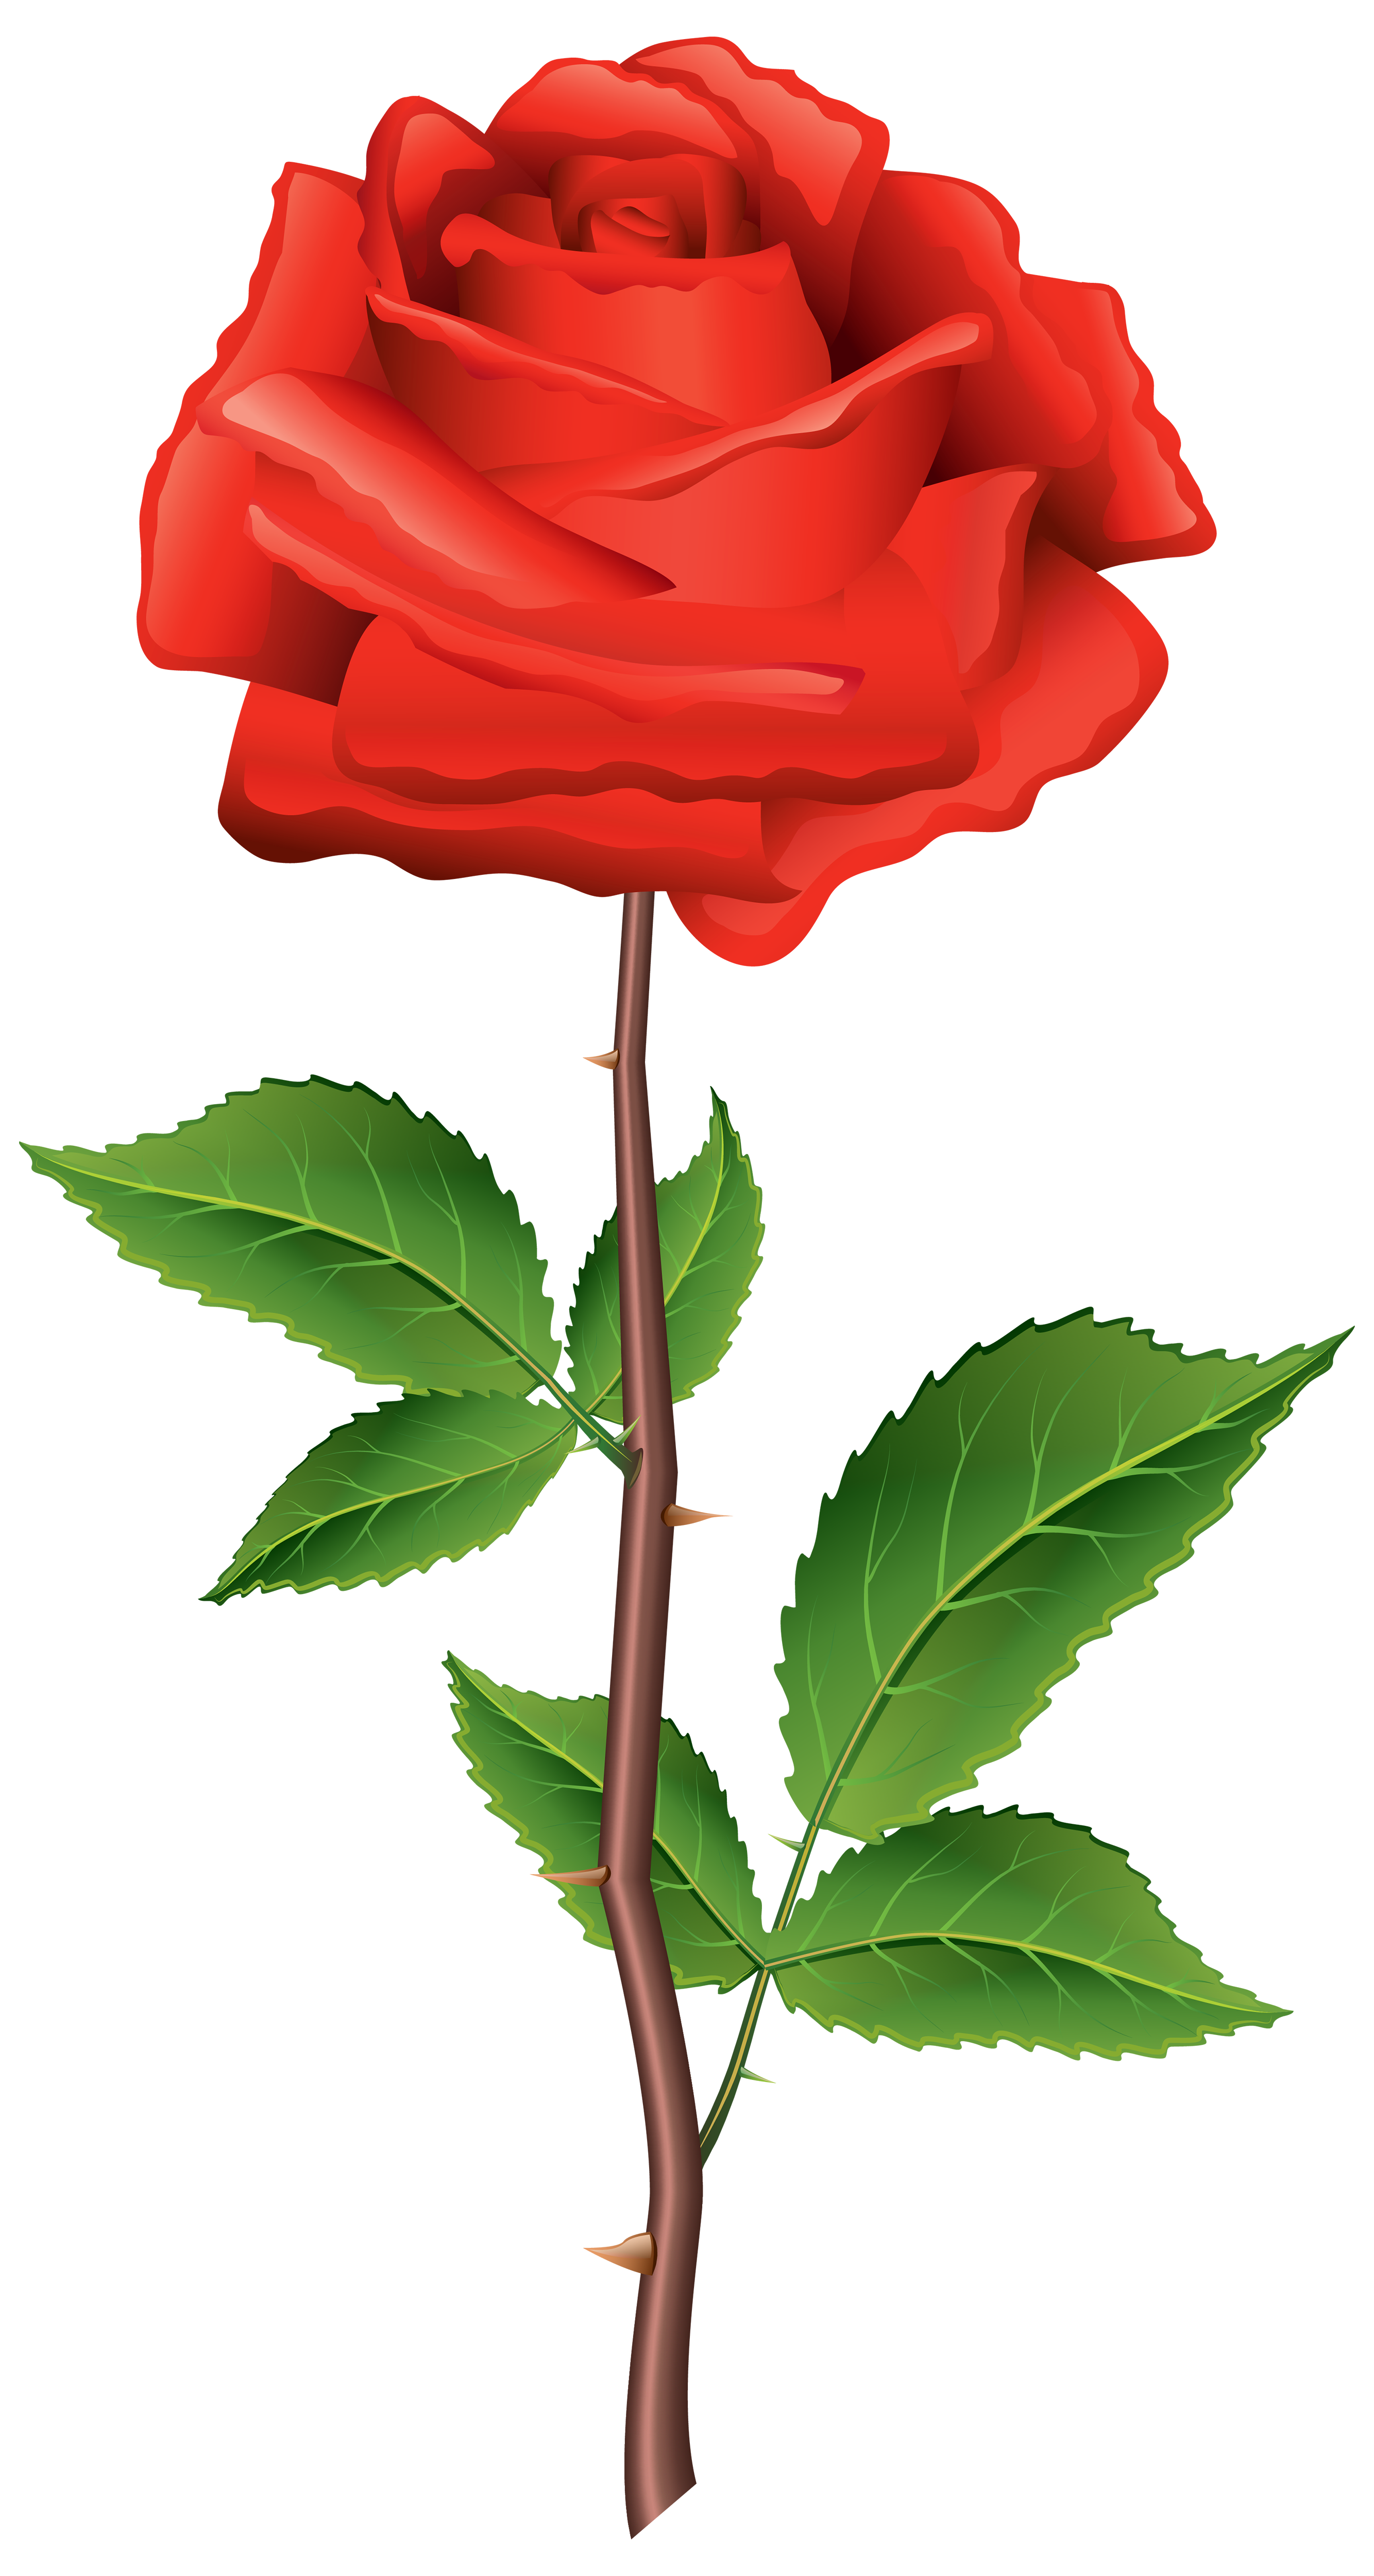 Rose PNG image with transparent background Rosas, Rosas